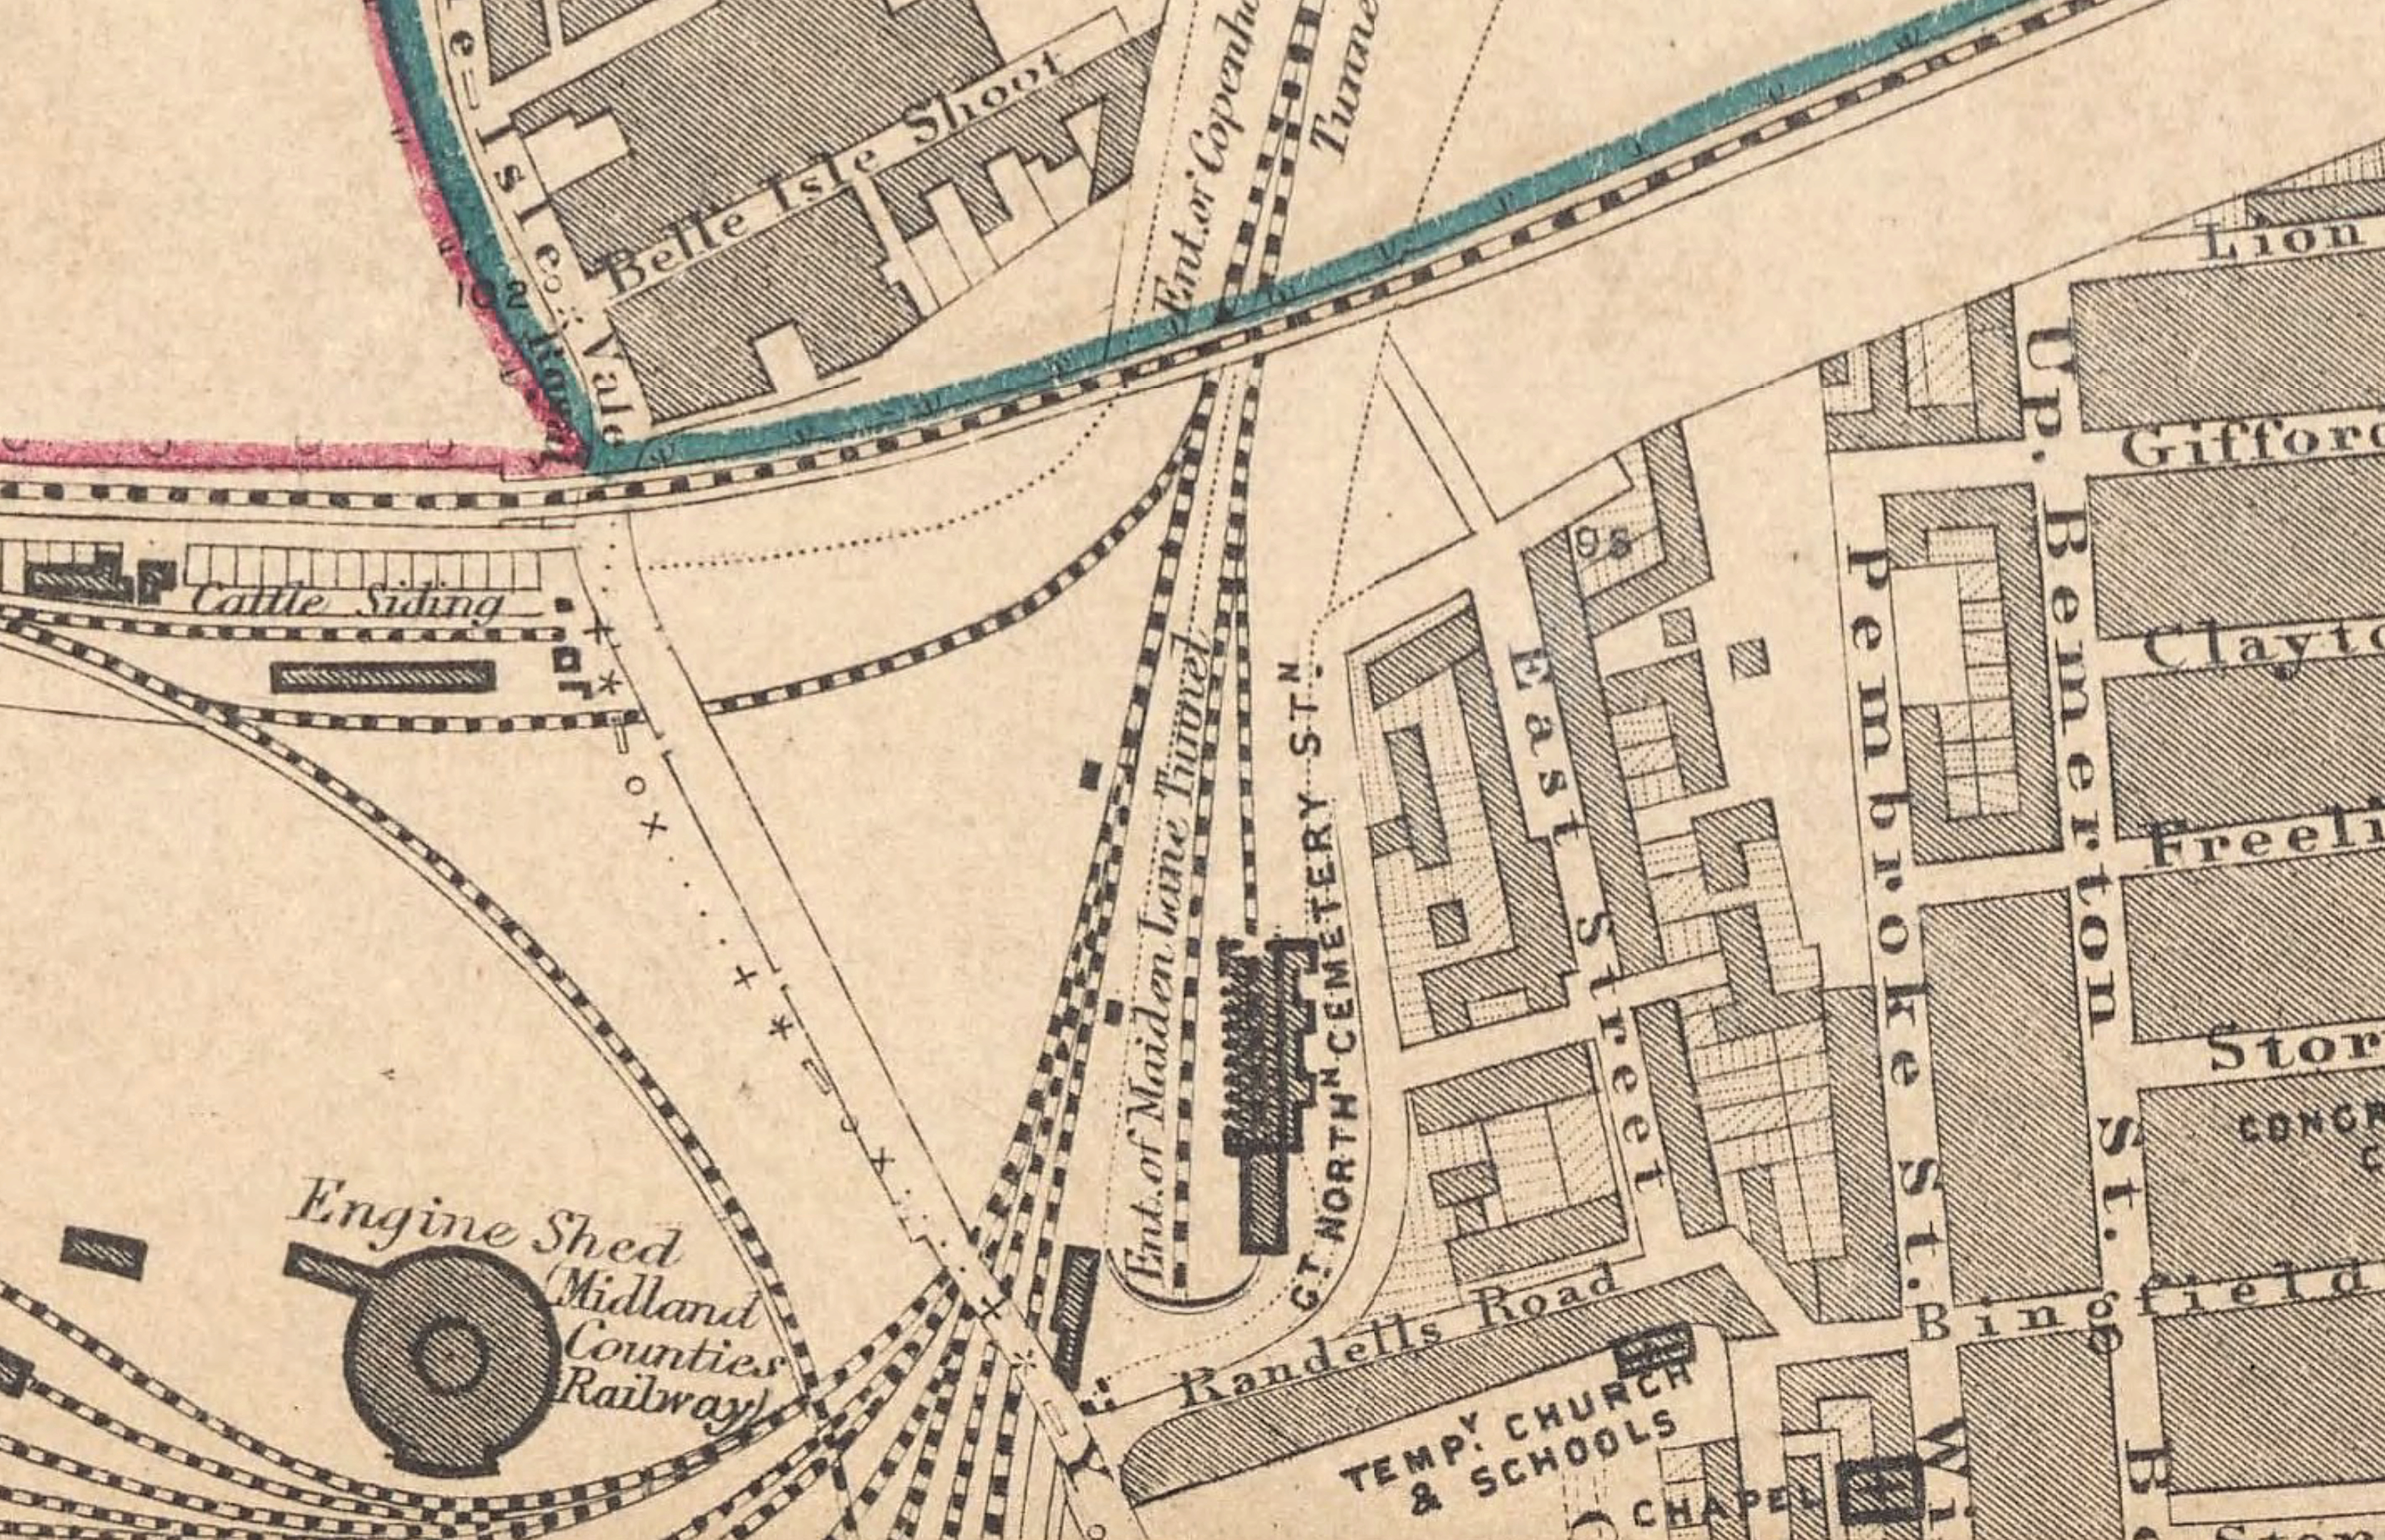 Map of the Great Northern Cemetery Terminal near Kings Cross